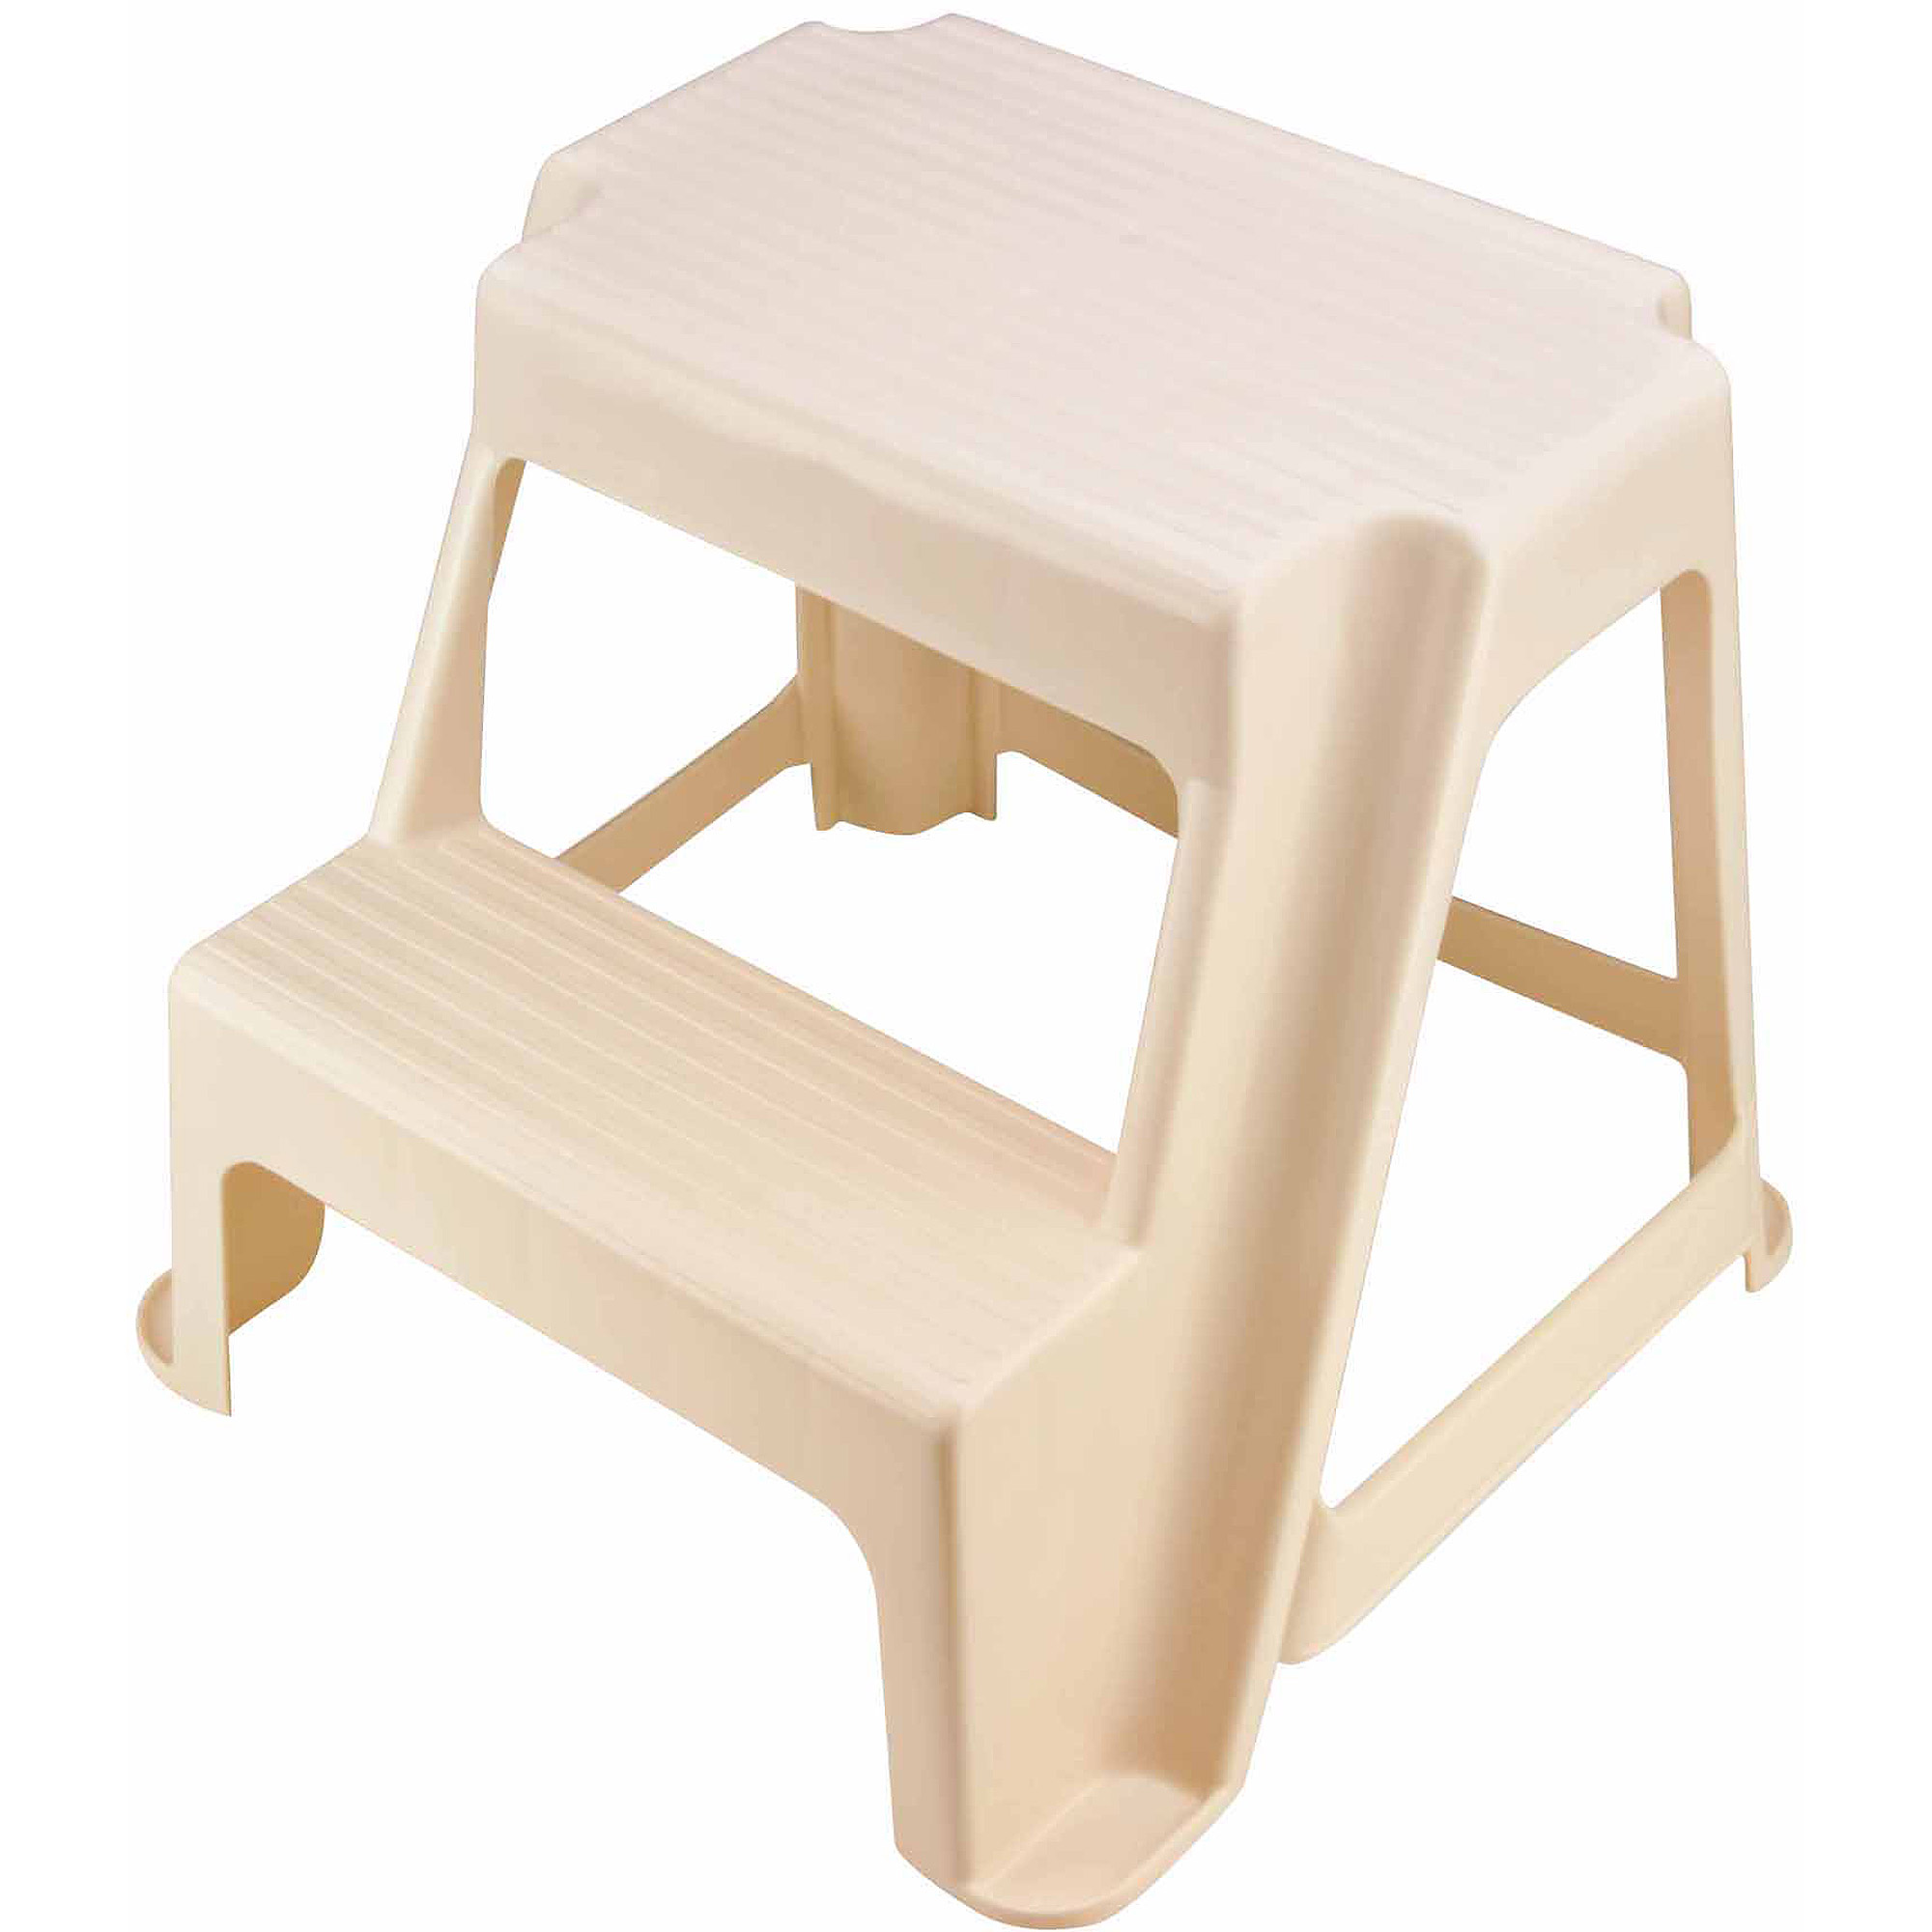 Rubbermaid Two Step Stool Bisque Walmart Com